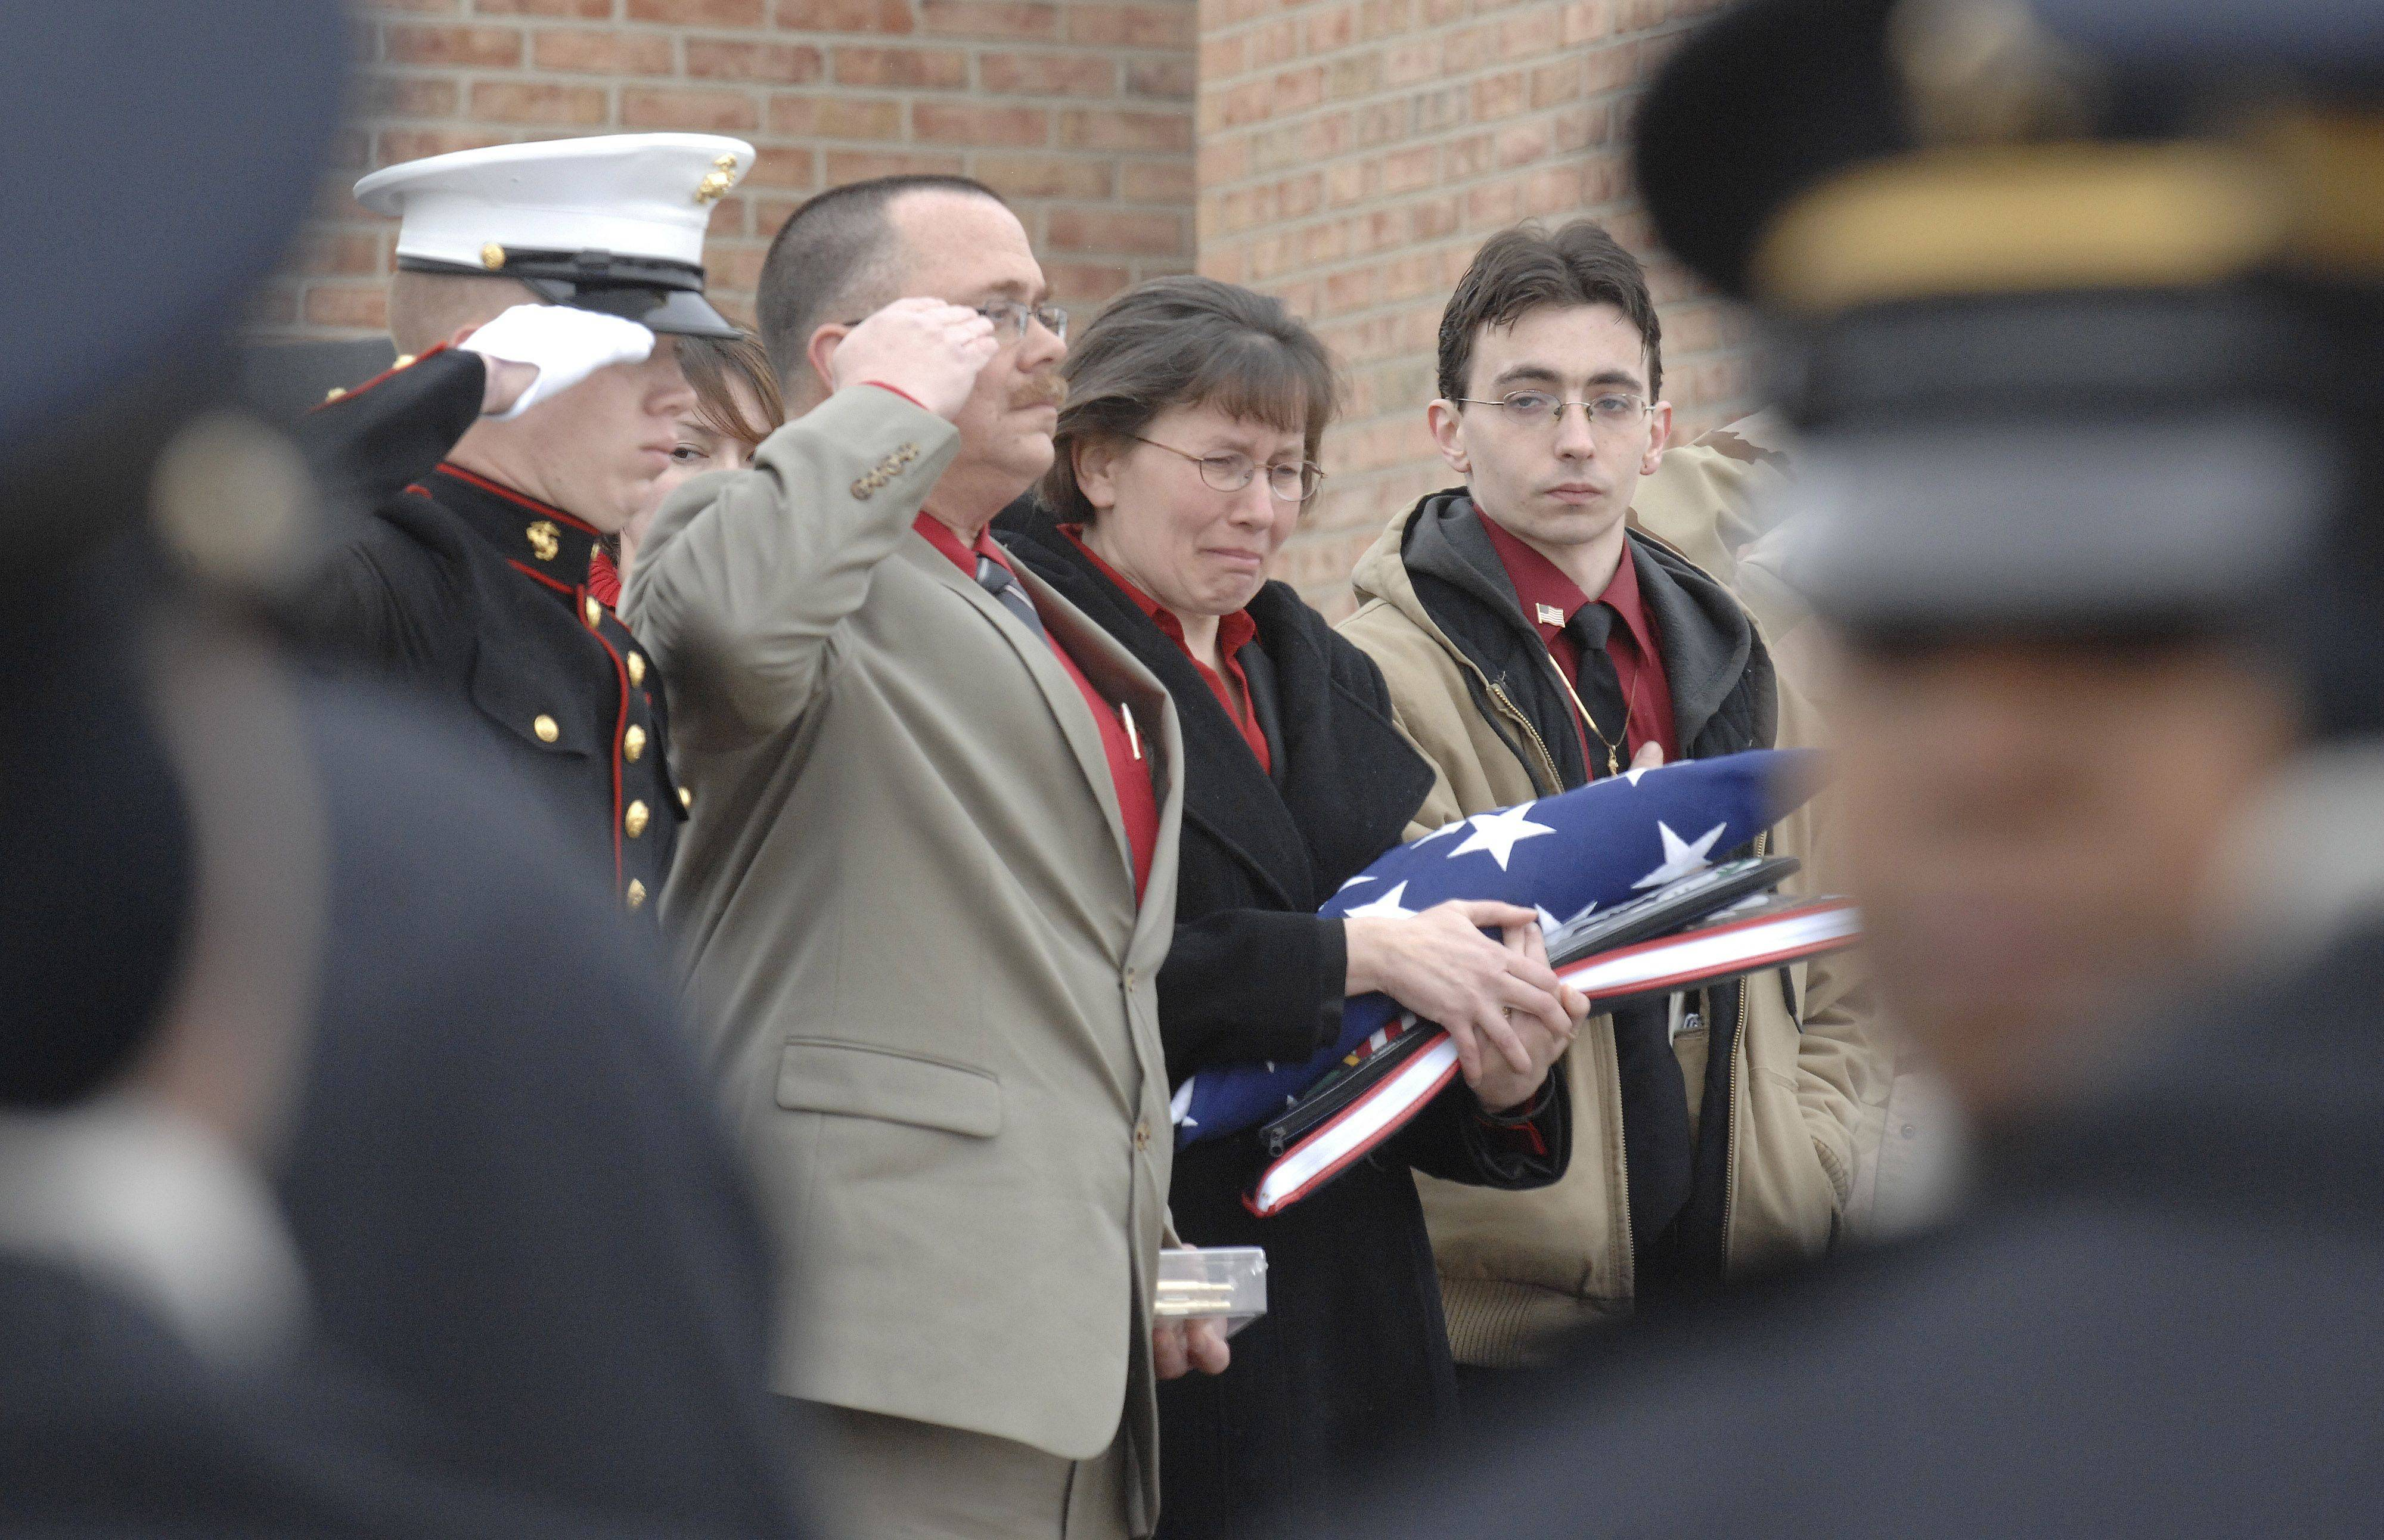 Mary Patterson breaks down while the casket of her son, Spc. Christopher A. Patterson, is placed into the hearse at the close of his funeral and full military honors in Batavia on Saturday, January 21. She is flanked by son, Carl, far left, husband Bob, and son Thomas, right.